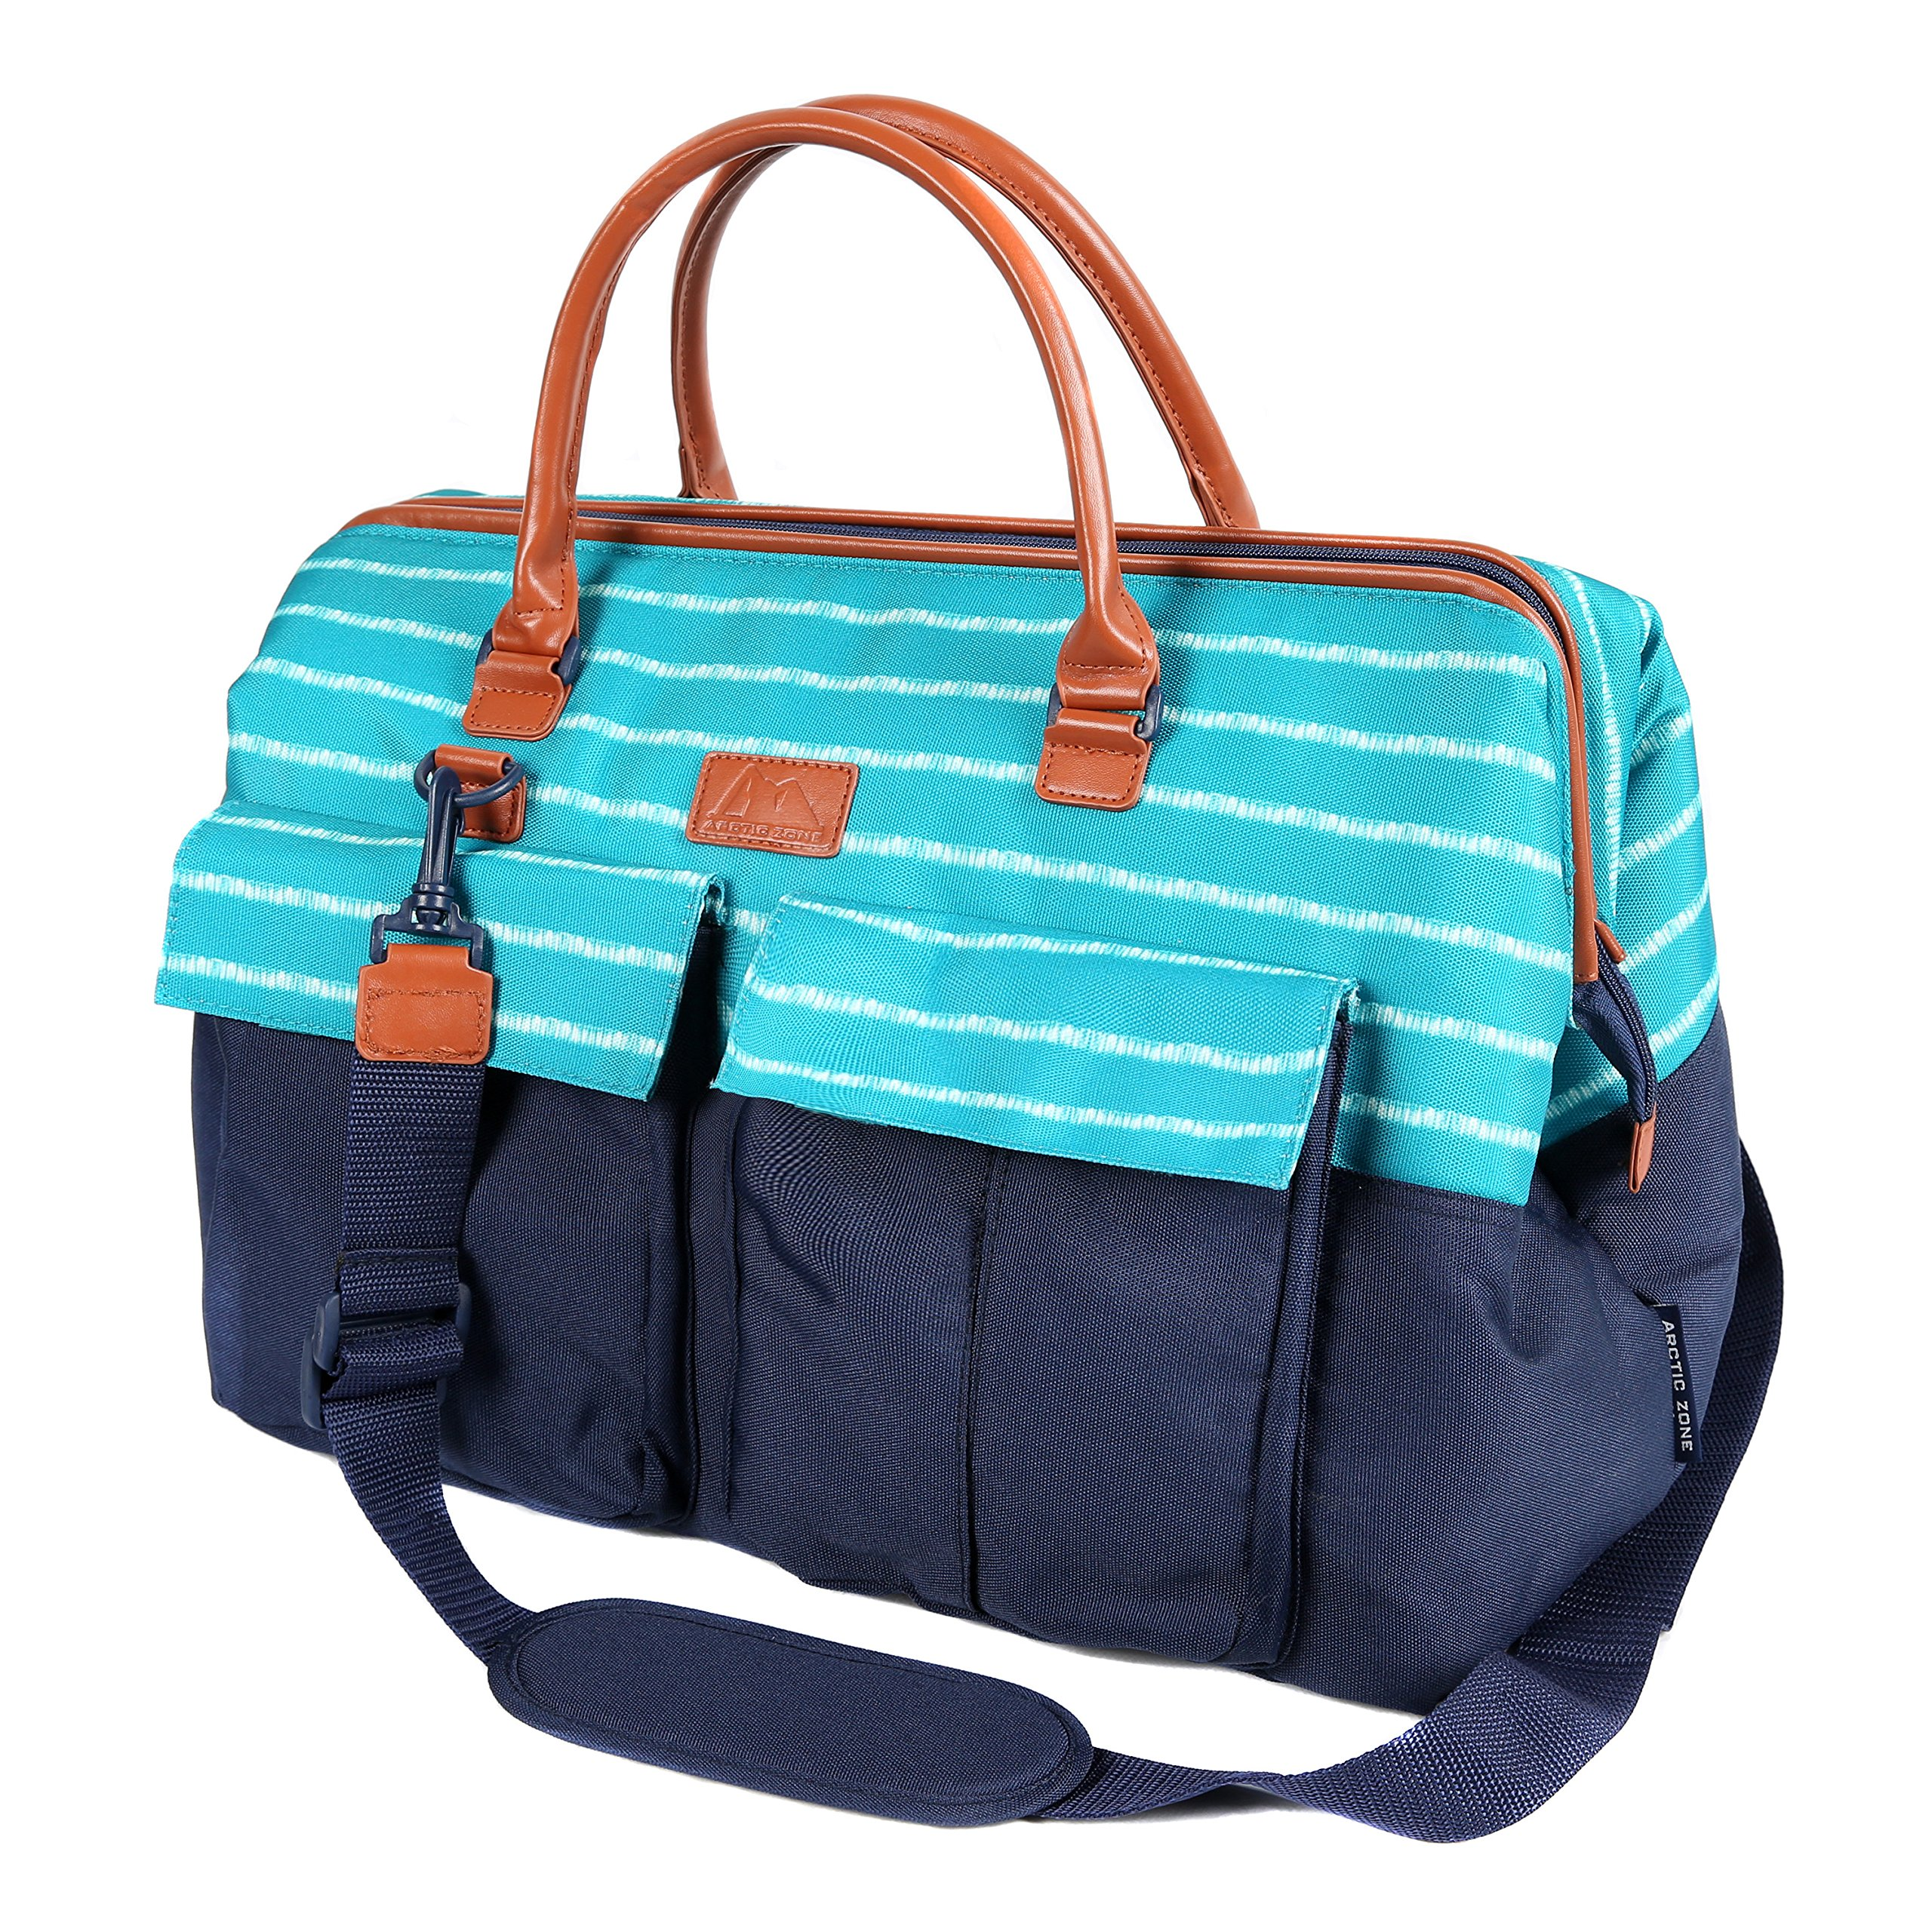 Arctic Zone 1523AMPR0431 Insulated Picnic Carrier, Teal by Arctic Zone